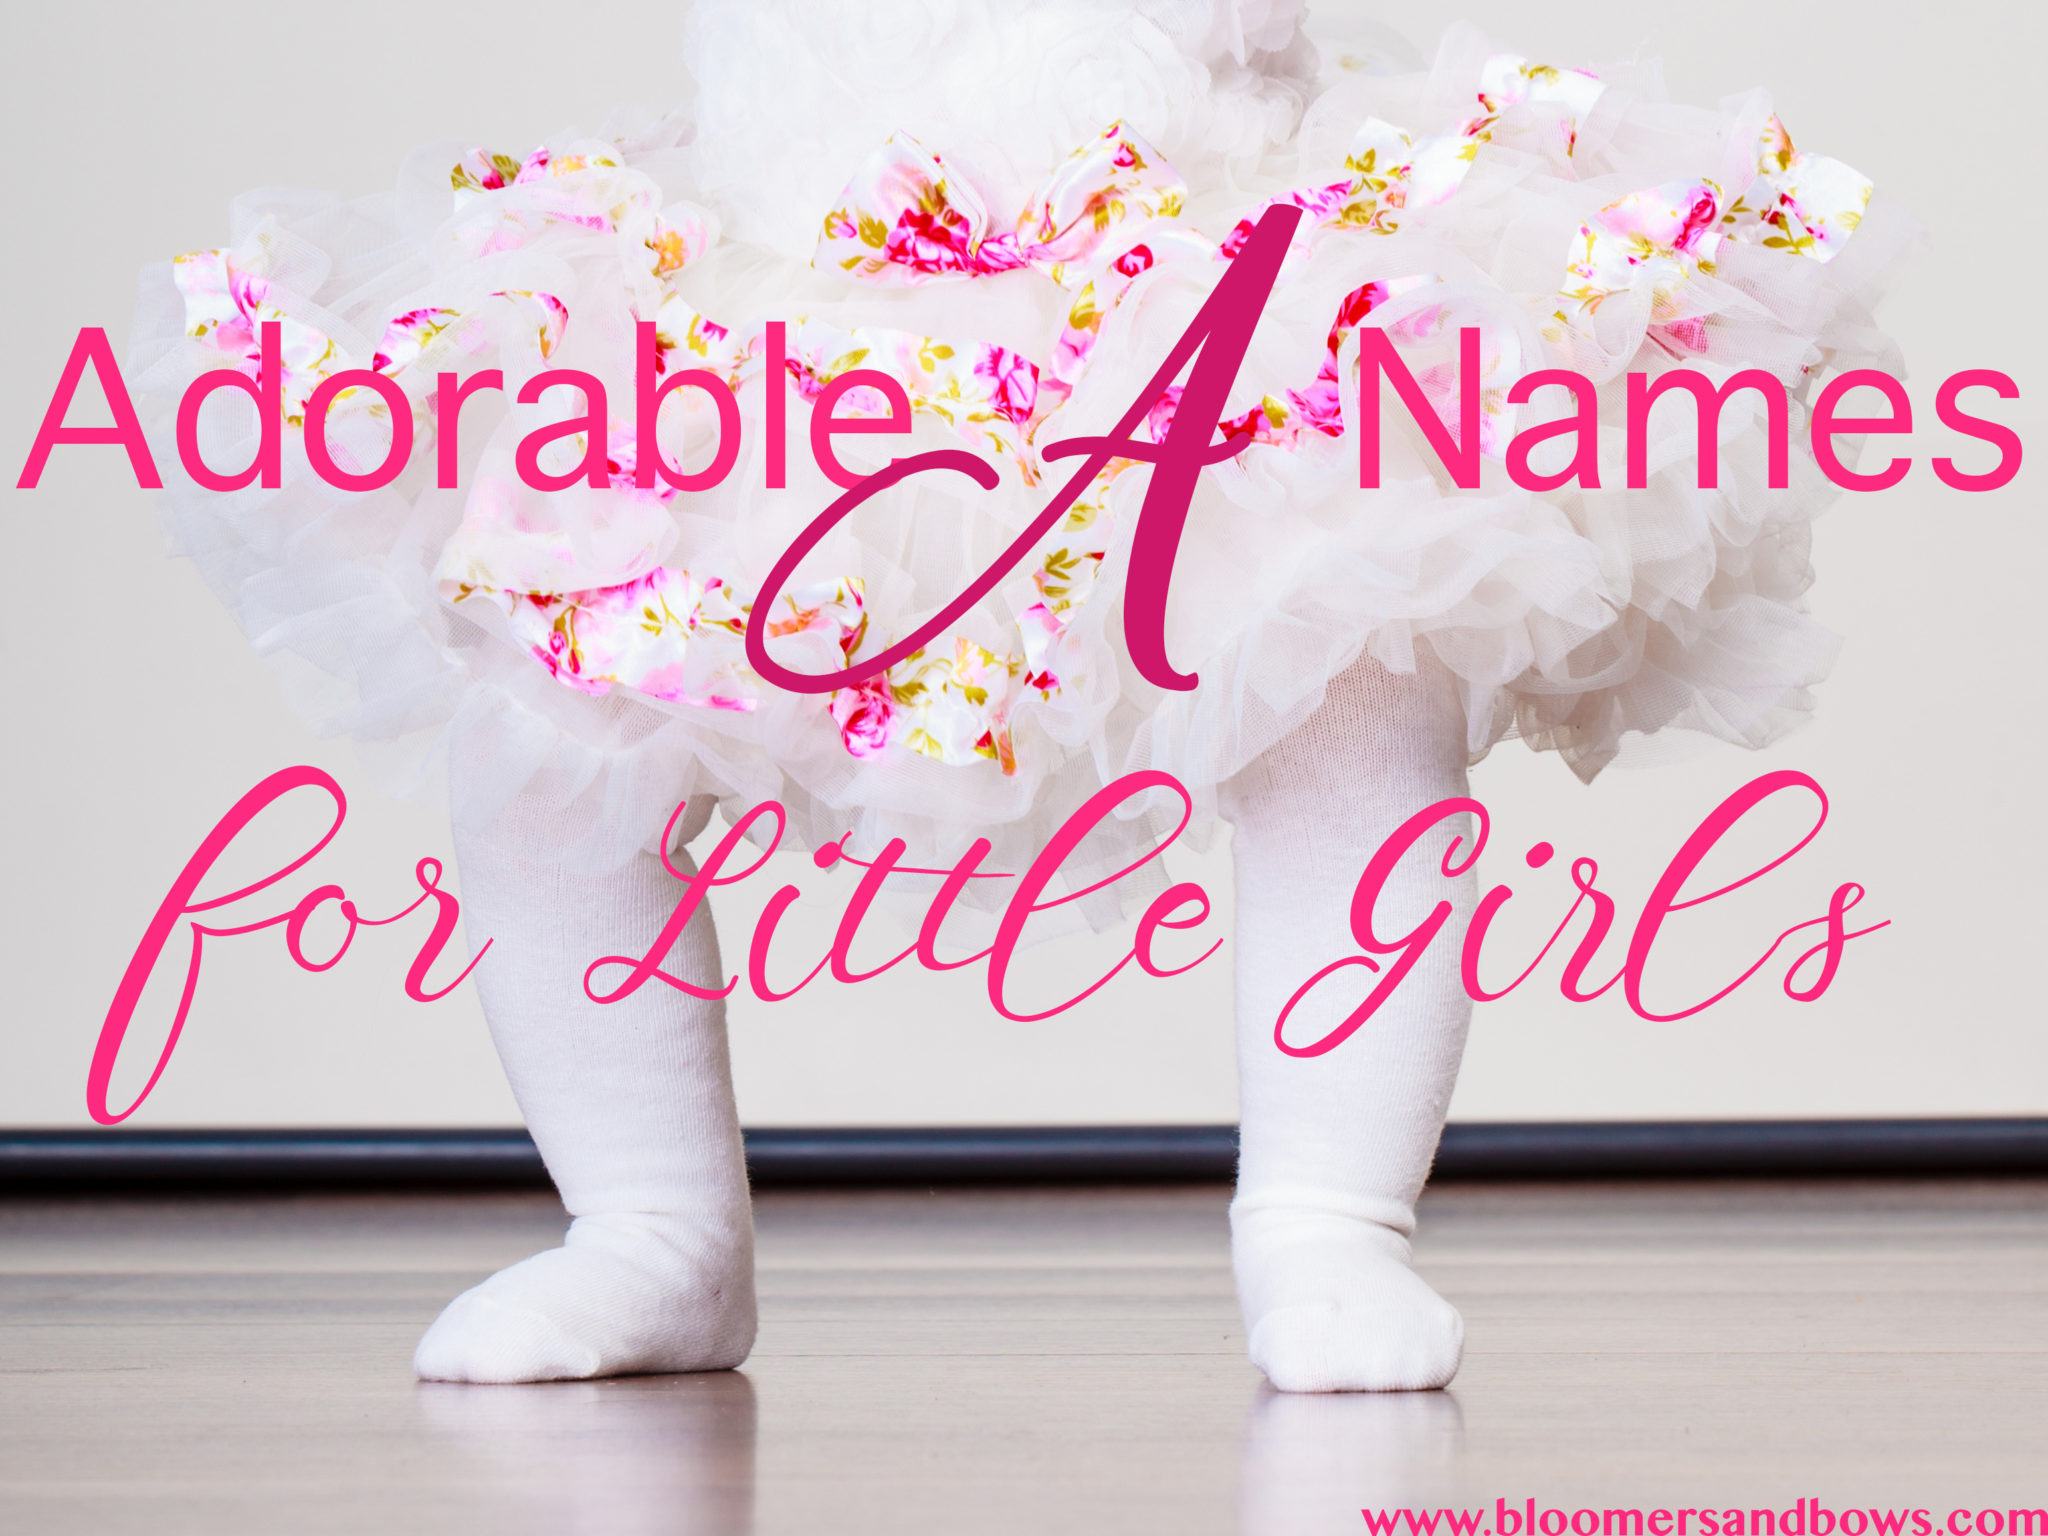 Adorable Names that Start with A for Little Girls | Bloomers and Bows www.bloomersandbows.com | Aaliyah Abarrane Abby Abigail Abigail Abilene Abril Ada Adaline Adalyn Adalynn Adda Addilyn Addilynn Addison Addisyn Addyson Adelaide Adele Adelina Adeline Adelyn Adelynn Adilynn Adley Adriana Adrianna Adrienne Aileen Ailsa Aimee Ainsley Aisha Aislinn Aitana Aiyana Alaia Alaina Alana Alani Alanna Alannah Alaya Alayah Alayna Aleah Aleena Alejandra Alena Alessandra Alexa Alexandra Alexandria Alexia Alexis Alia Aliana Alianna Alice Alicia Alina Alisha Alison Alissa Alisson Alivia Aliya Aliyah Aliza Allie Allison Ally Allyson Alma Alondra Alyson Alyssa Amalia Amanda Amani Amara Amari Amaris Amaya Amber Amelia Amelie America Amia Amina Aminah Amira Amirah Amiya Amiyah Amora Amy Amya Ana Anabella Anabelle Anahi Analia Anastasia Anastasia Anaya Andi Andrea Angel Angela Angelica Angelina Angeline Angelique Angie Anika Aniya Aniyah Ann Anna Annabel Annabella Annabelle Annalee Annalise Anne Annie Annika Annora Ansley Anya April Arabella Aranza Arden Arely Aria Ariadne Ariah Ariana Arianna Ariel Ariella Arielle Aries Ariya Ariyah Armani Arya Aryana Aryanna Ashley Ashlyn Ashlynn Asia Aspen Astrid Athena Aubree Aubrey Aubrianna Aubrie Aubriella Aubrielle Audrey Audrina Aurelia Aurora Autumn Ava Avah Avalyn Avalynn Averi Averie Avery Aviana Avianna Aviva Aya Ayla Ayleen Aylin azalea Azaria Azariah